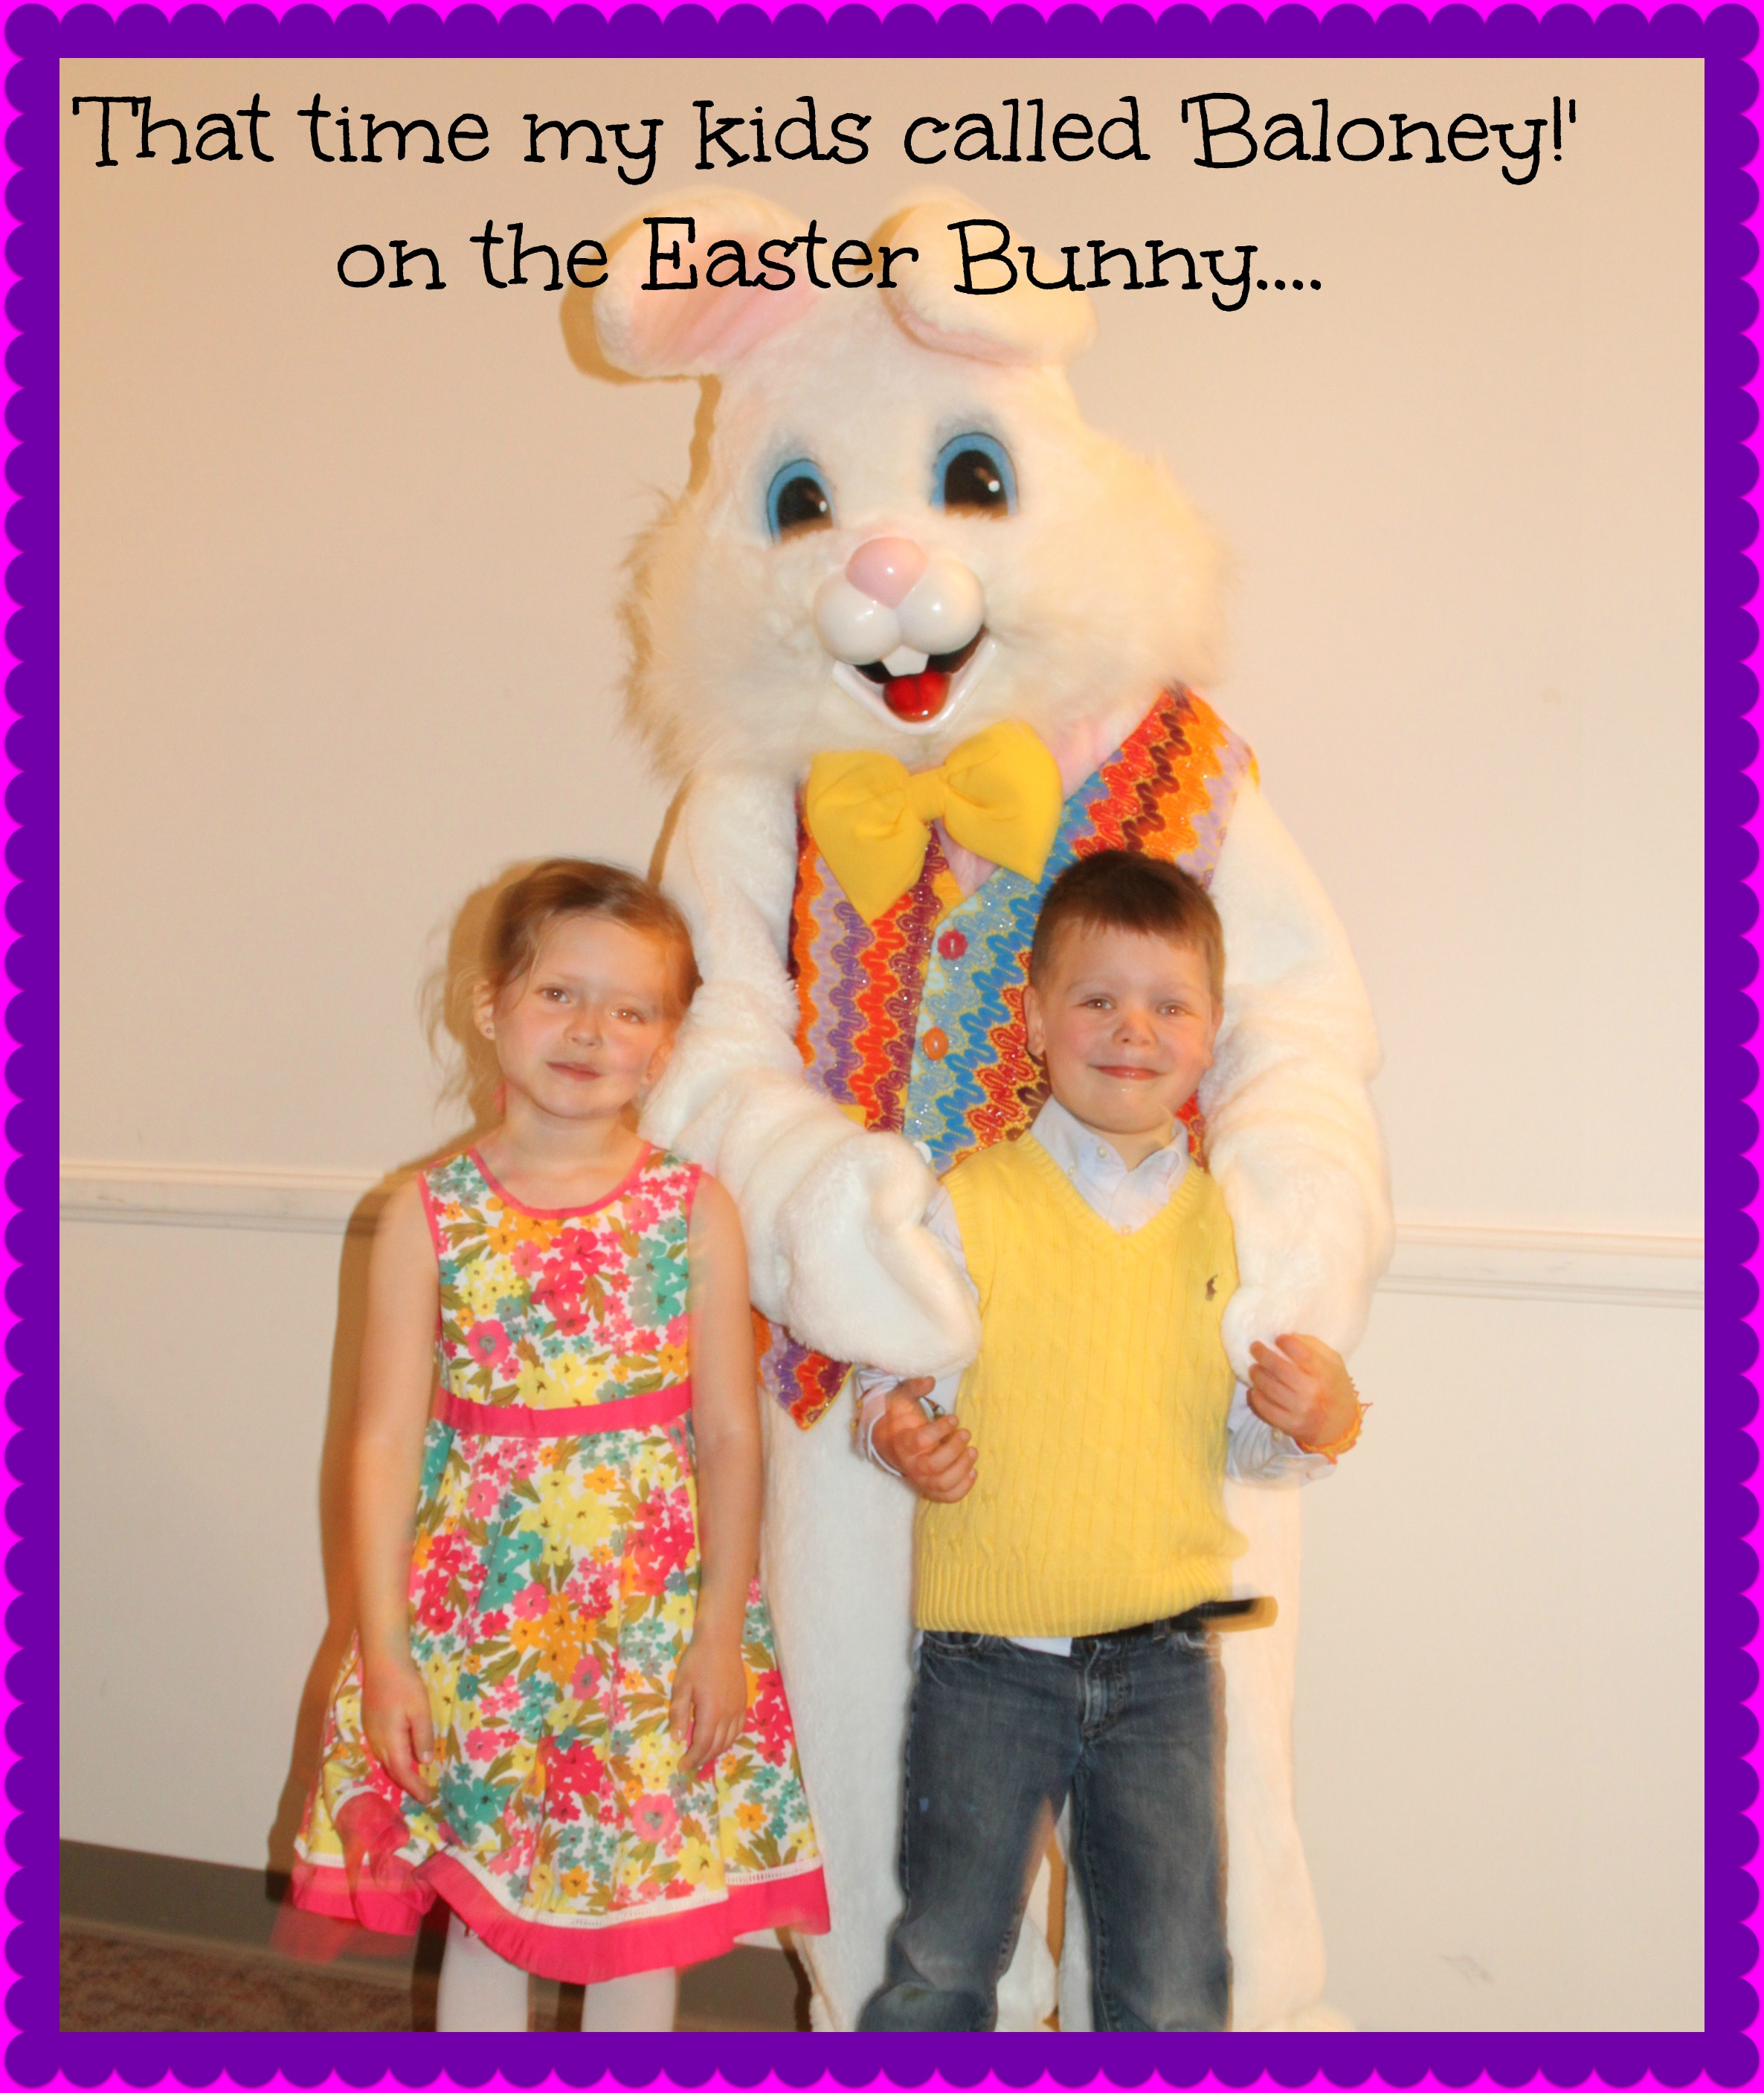 That time my kids called 'baloney' on the Easter Bunny